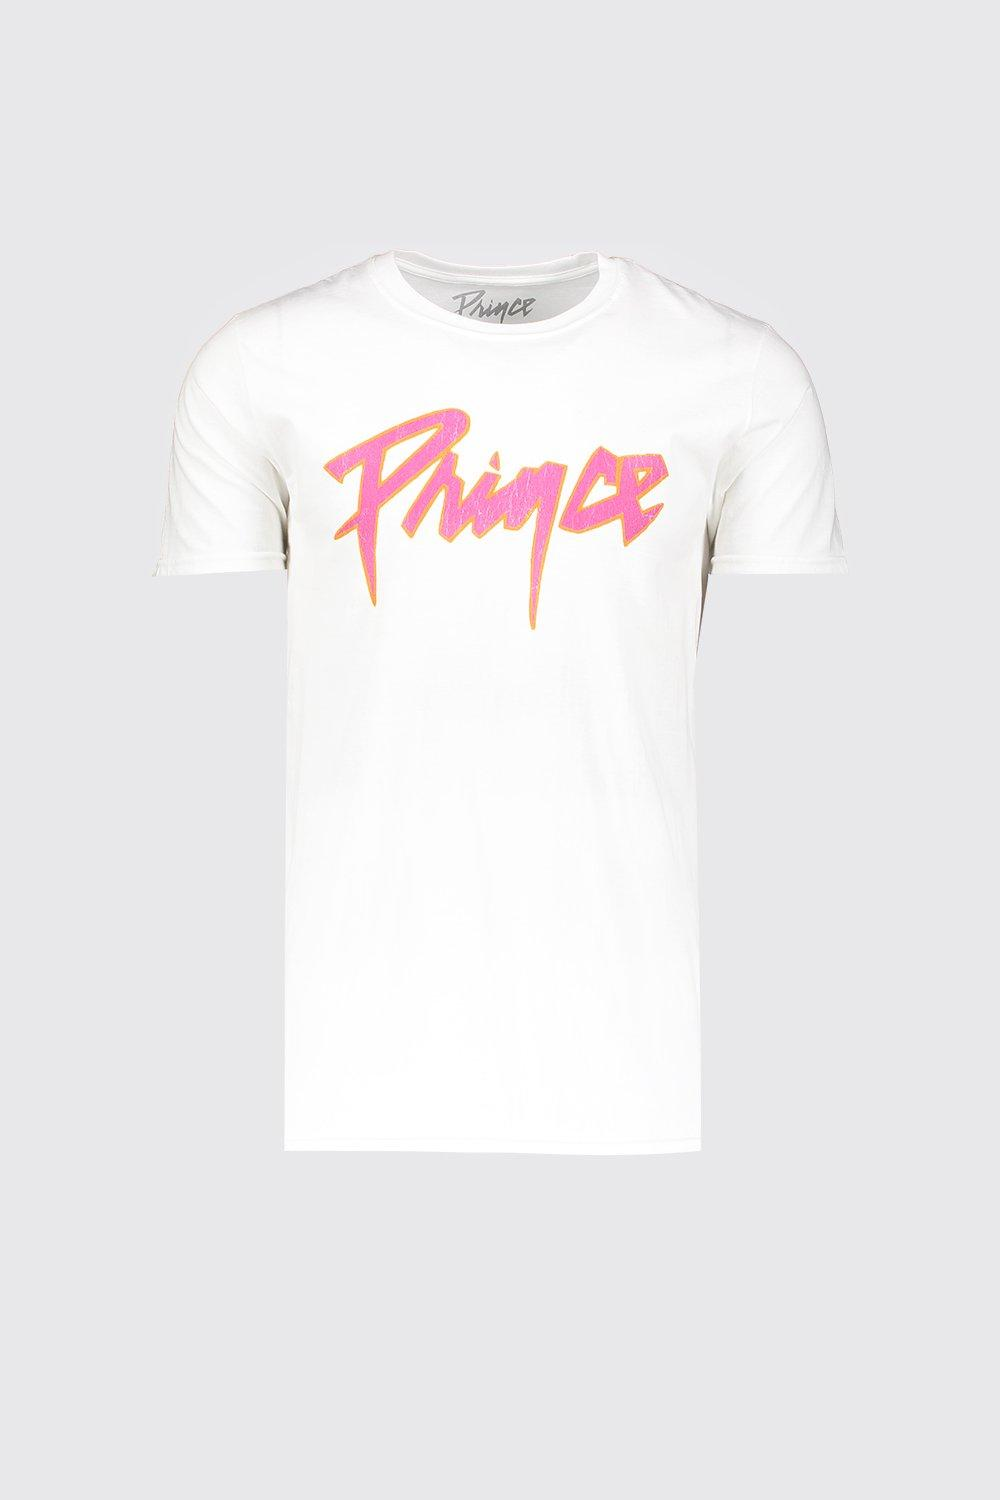 Please make sure to update the quantity to the amount of t-shirts getting back print BACK PRINT Add-On